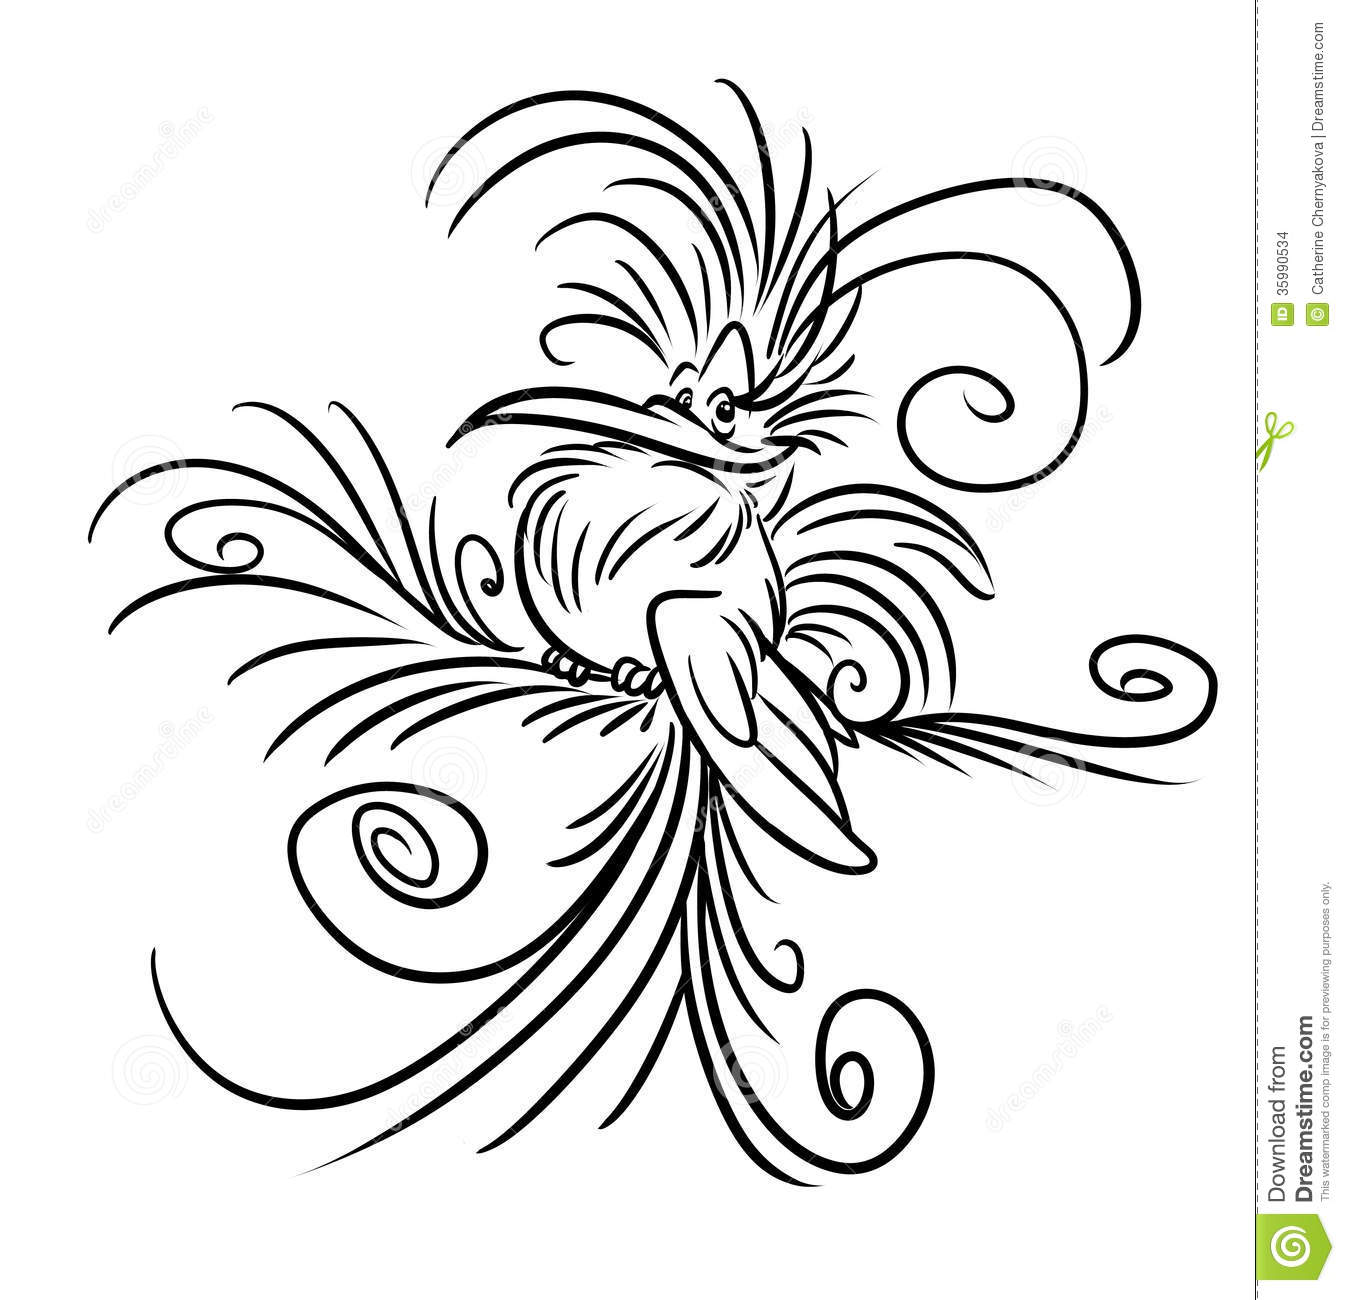 Contour Line Drawing Bird : Bird of paradise fluffy feathers cartoon stock